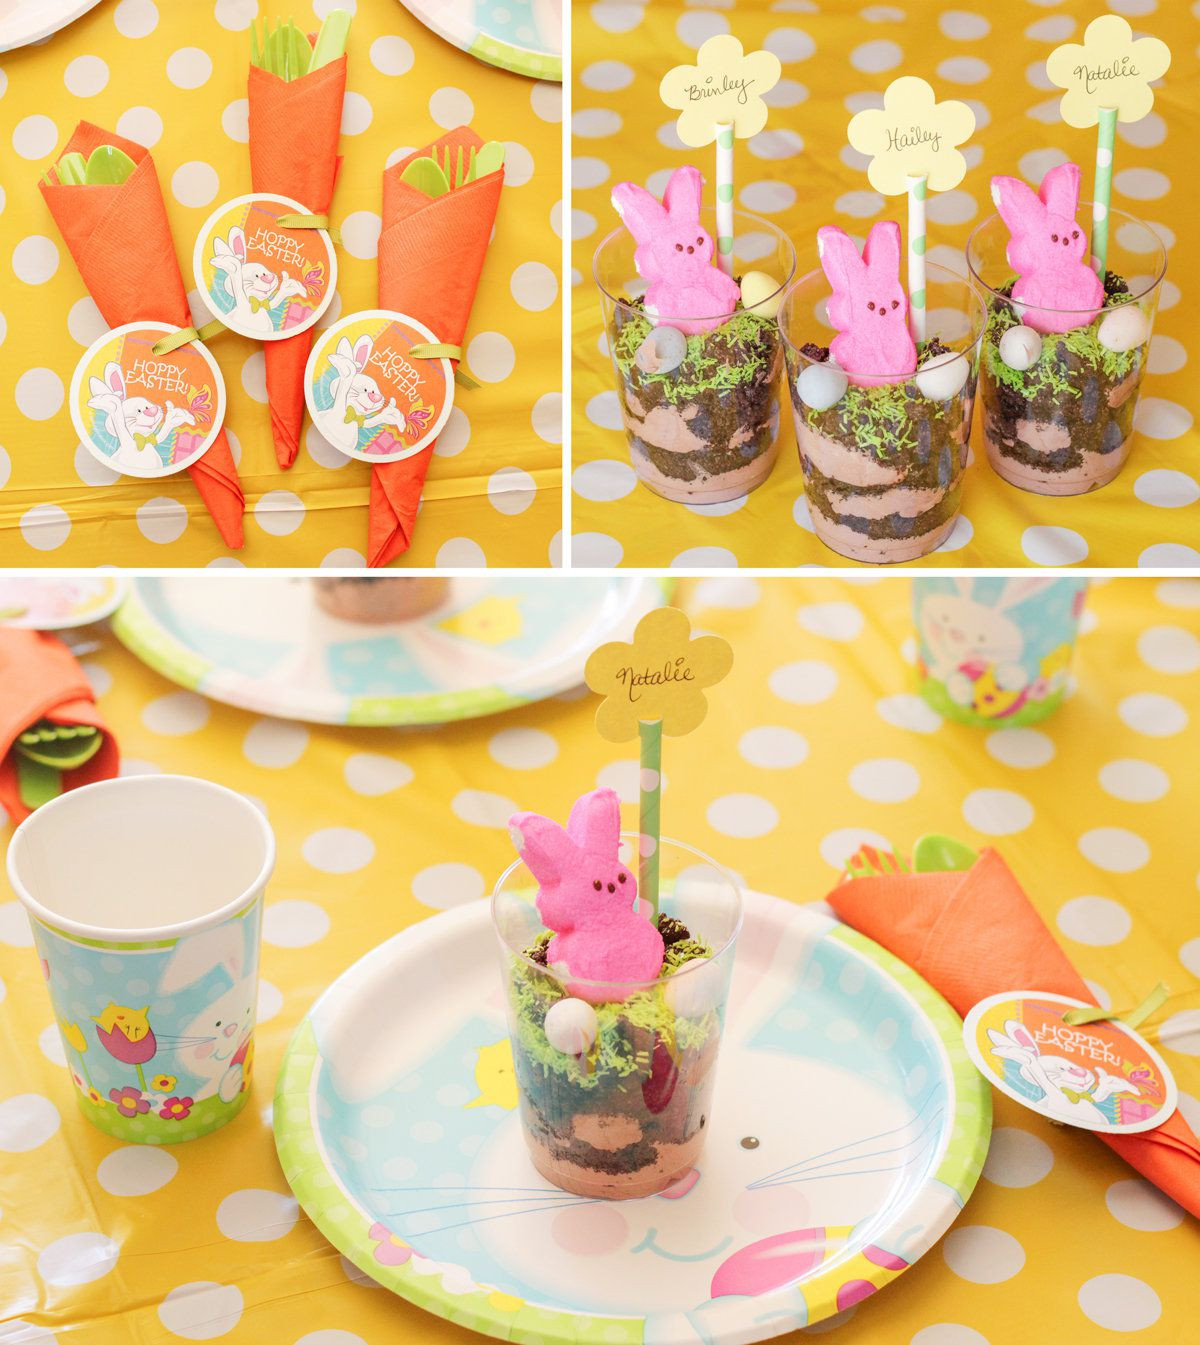 Best ideas about Easter Birthday Party . Save or Pin Easter Crafts & Games Now.